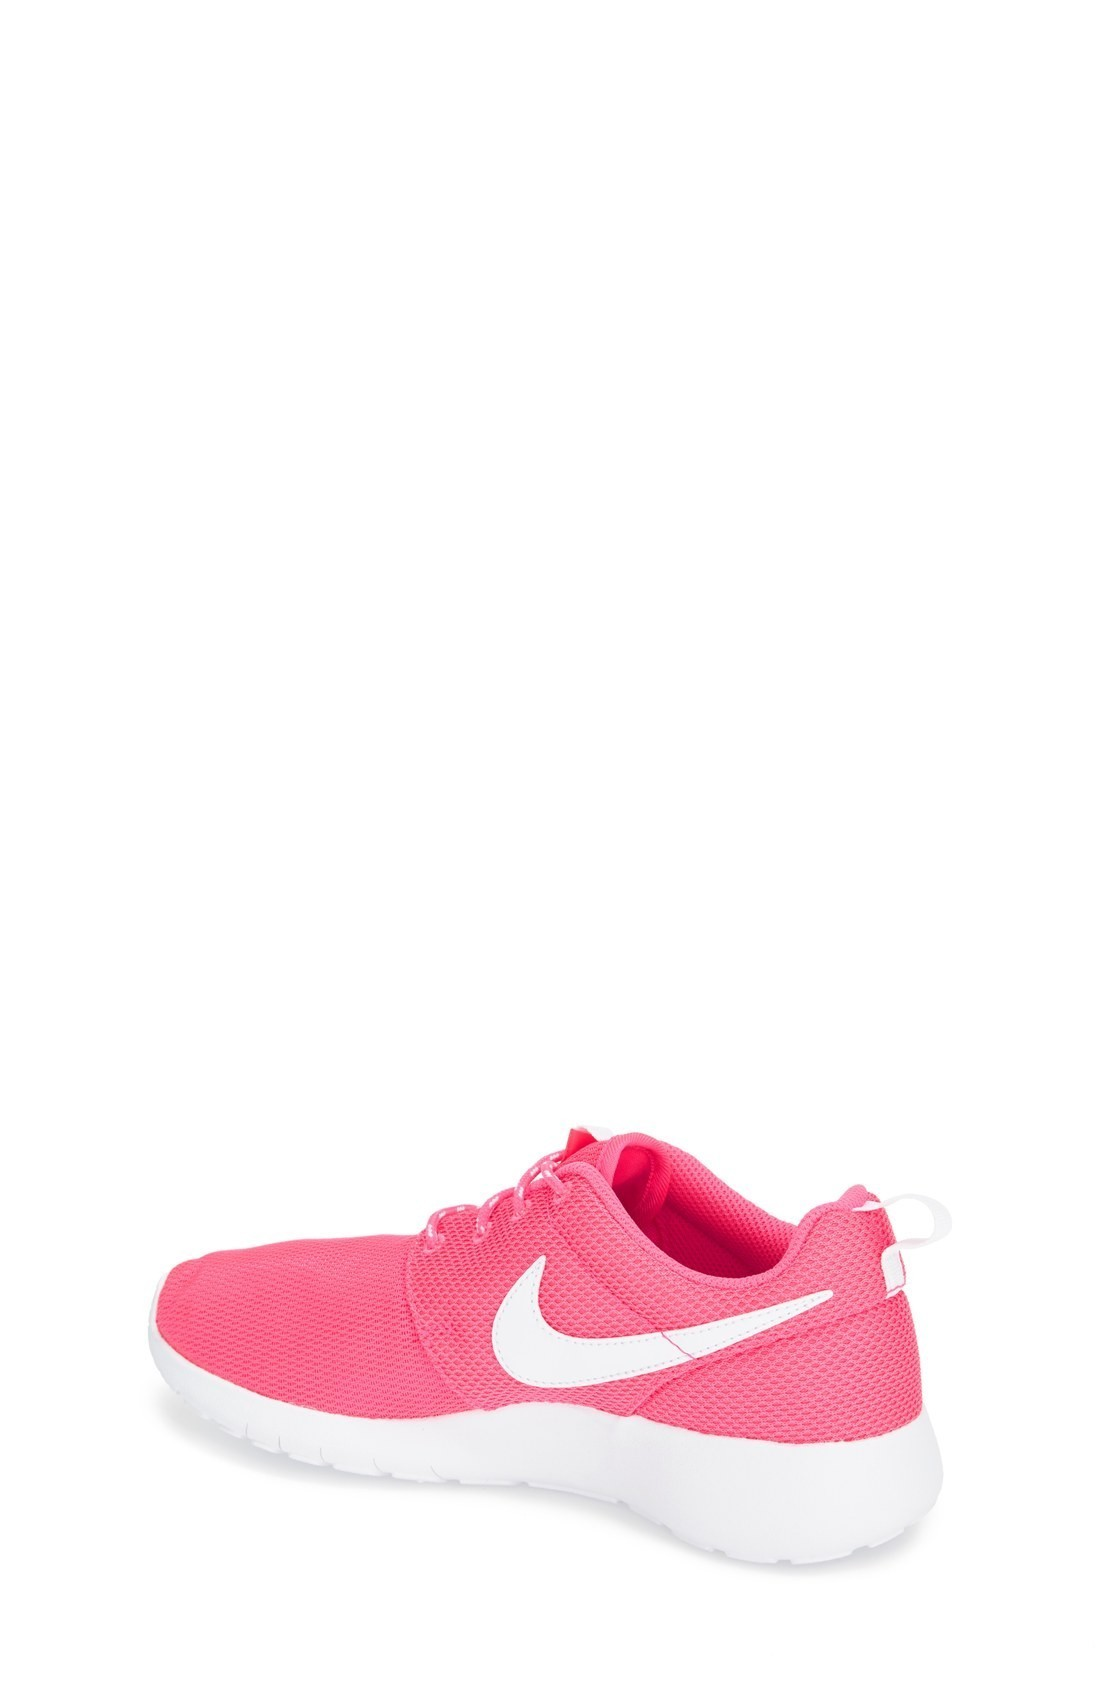 関税送料込みNike 'Roshe Run' Athletic Shoe (Little Kid  人気